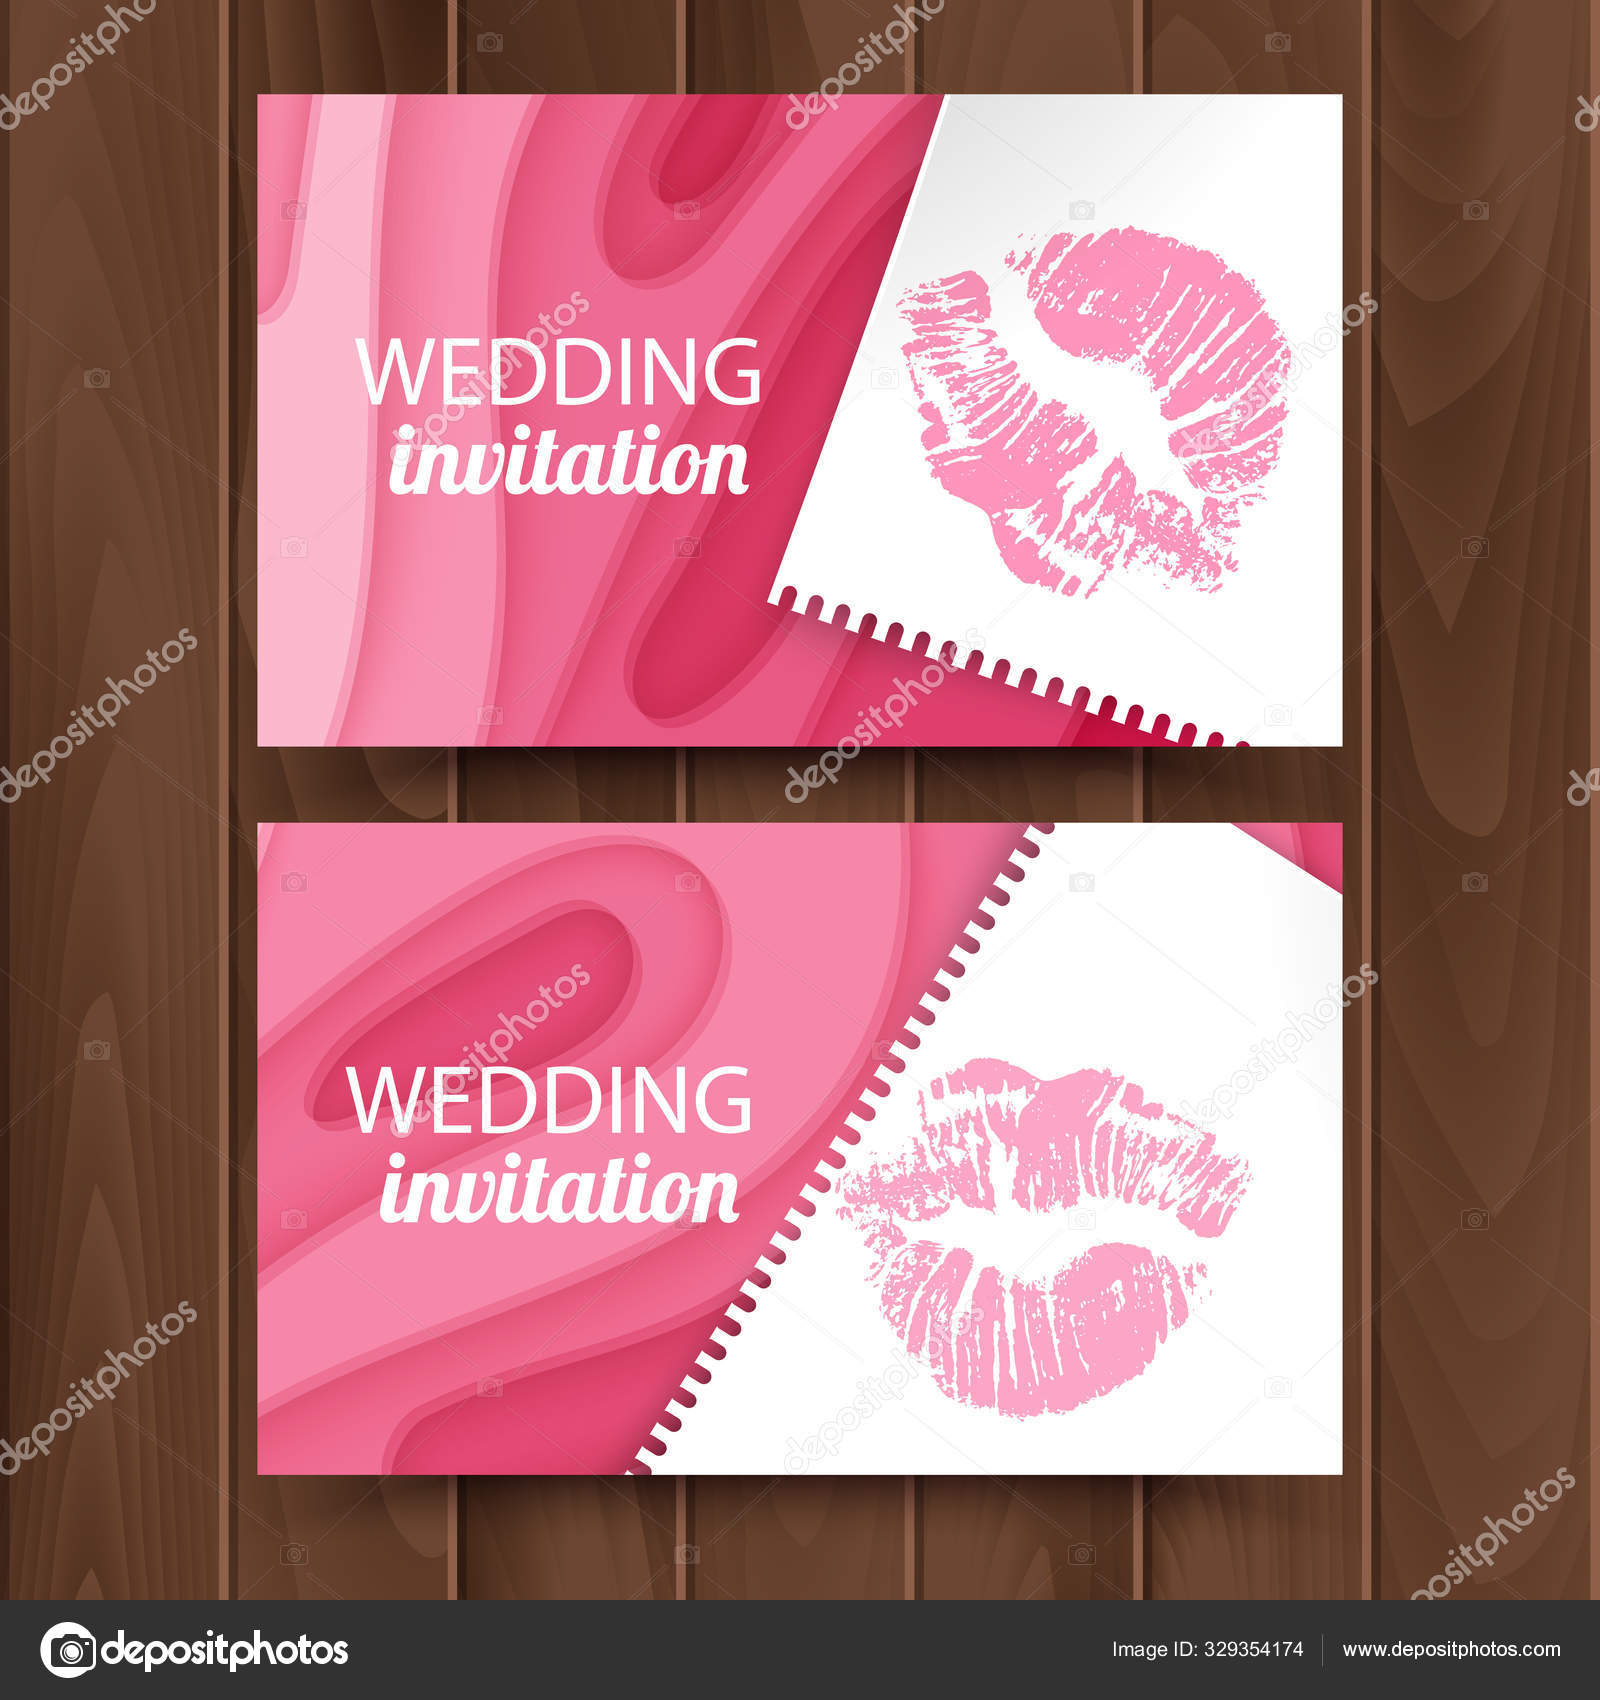 Postcard Template For Wedding Invitation With Paper Cut Design Of Pink Color Template Of Cutting Design Vector Eps 10 Format Stock Vector C Razalina 329354174